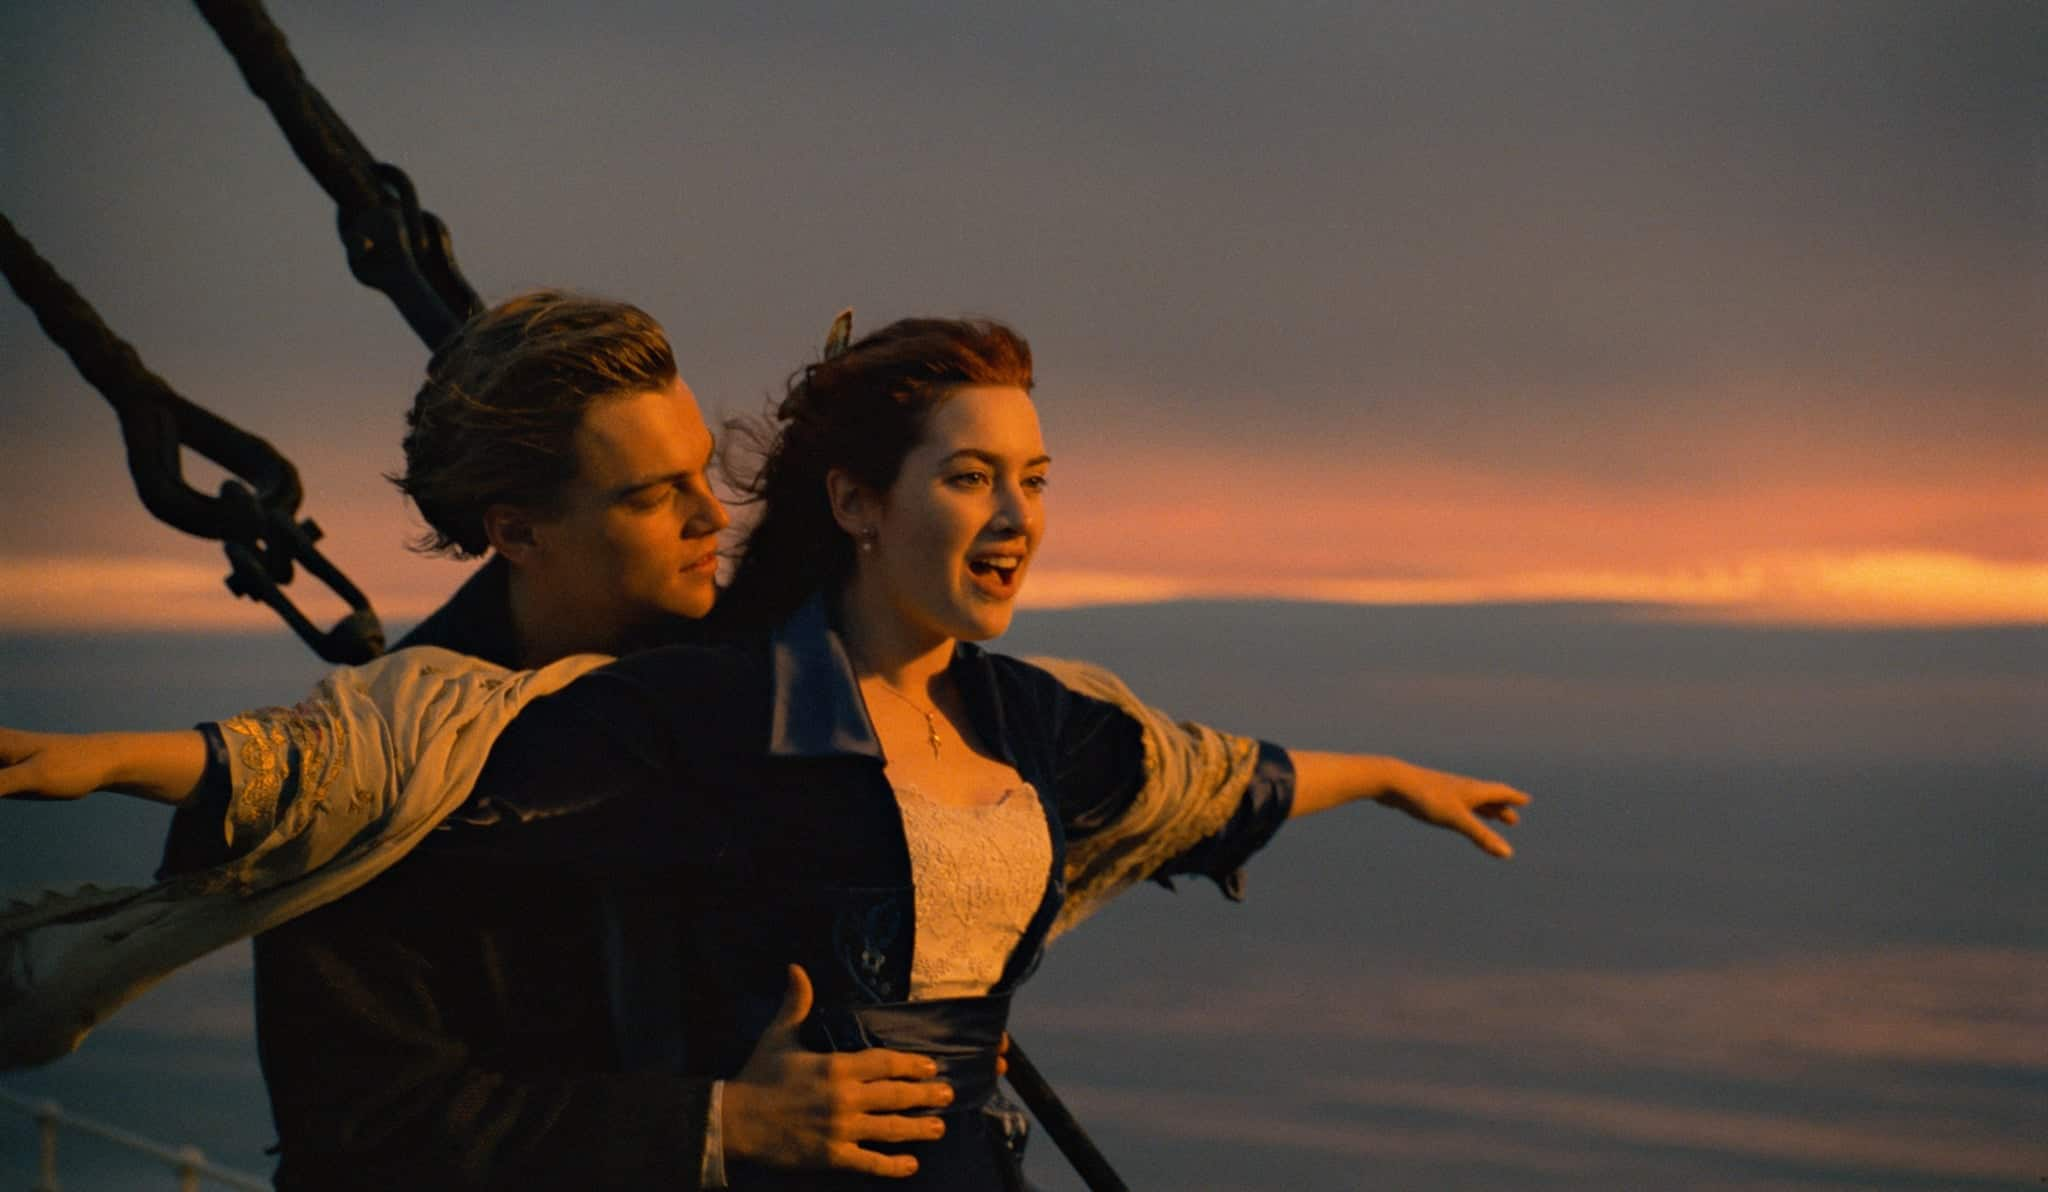 titanic-movie-leonardo-dicaprio